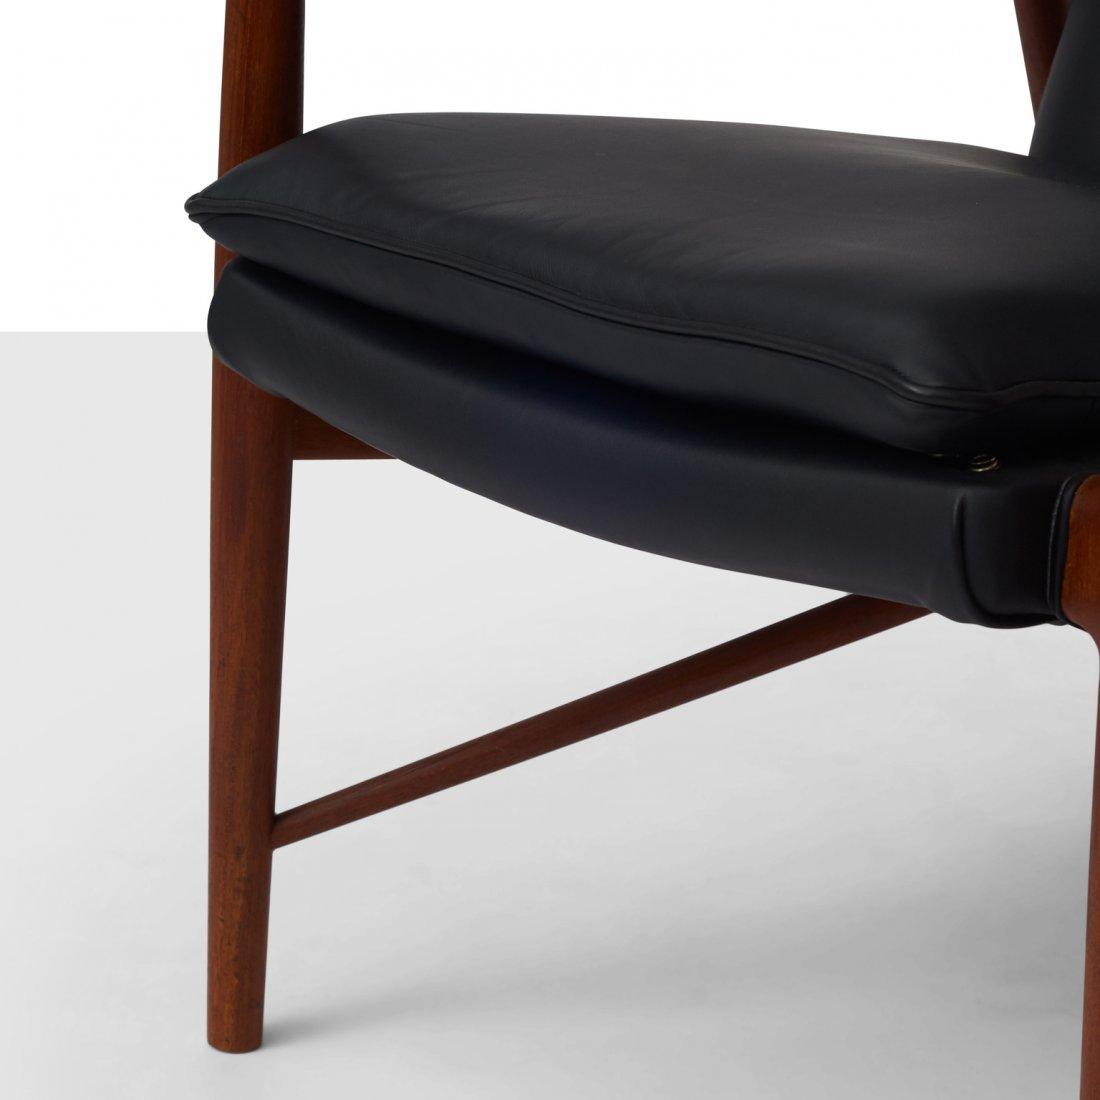 Finn Juhl, Pair of NV45 Chairs for Niels Vodder - 6